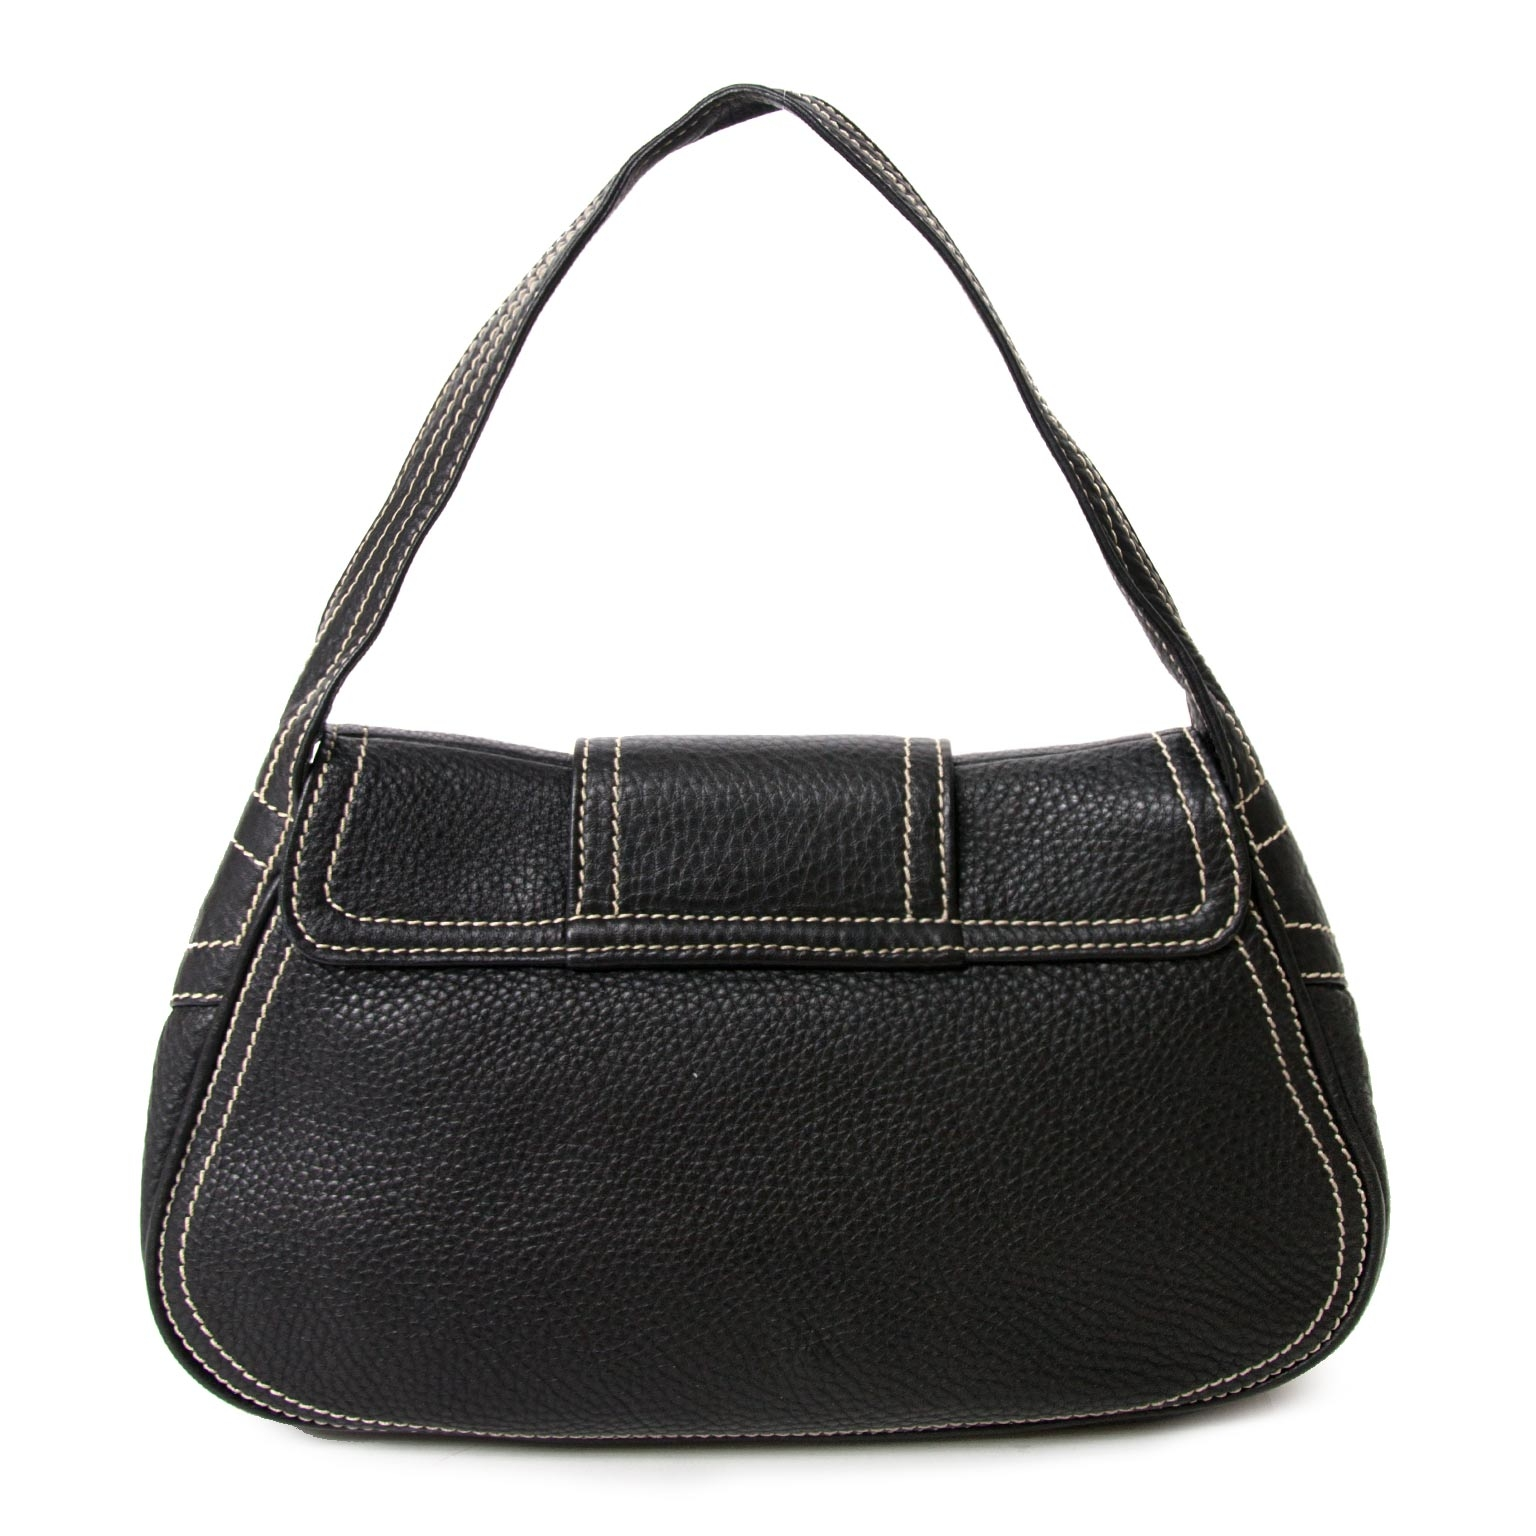 87de0c68a3 ... koop Céline Black Stiched Leather Buckle Shoulder Bag en betaal veilig  online